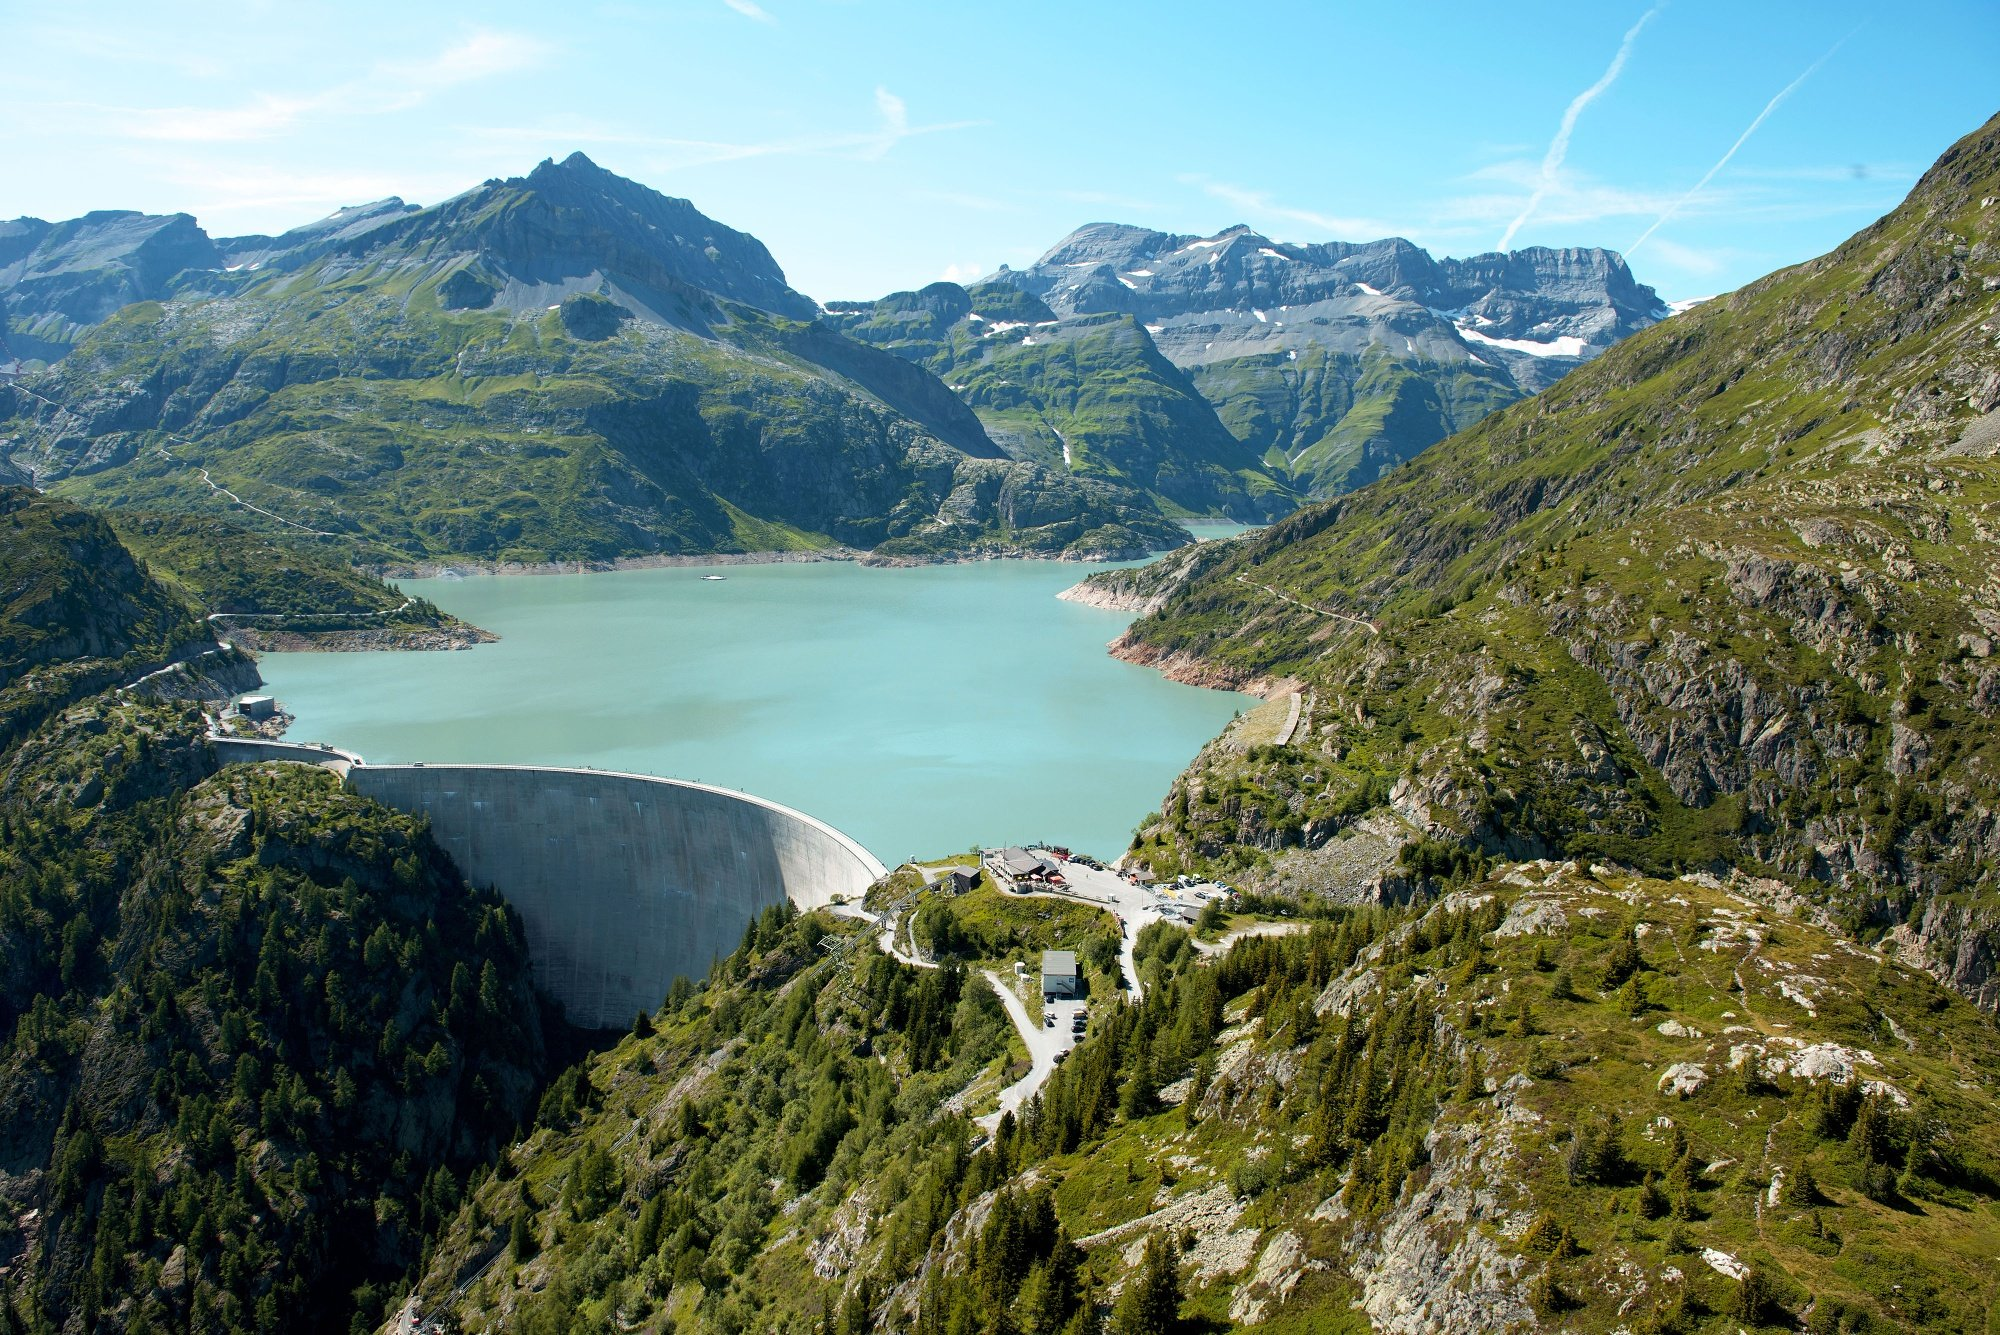 There are about eleven kilometres between Le Châtelard and the Col de la Gueulaz at a height of 1,965m. Made famous by its dinosaur tracks, this pass located at Emosson Dam had the honour of hosting the Tour de France on July 20, 2016.